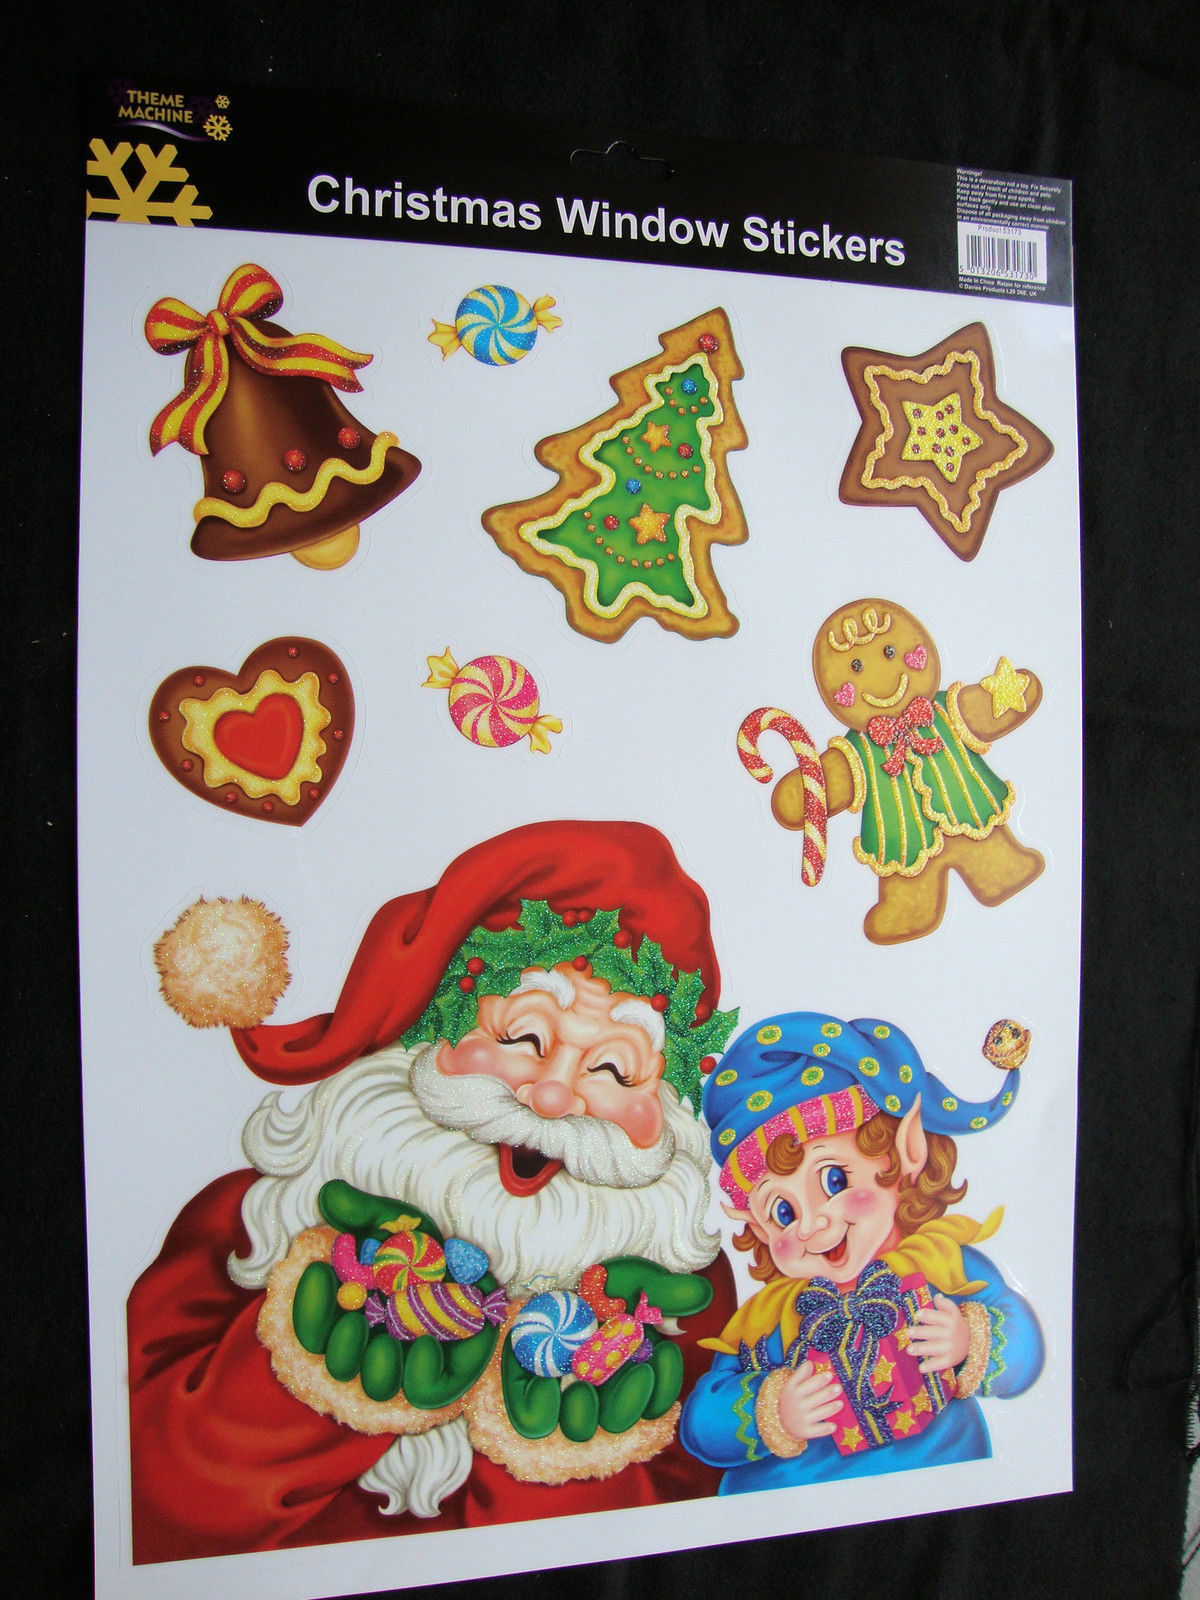 Details about large glitter cheap christmas window stickers decoration santa gingerbread